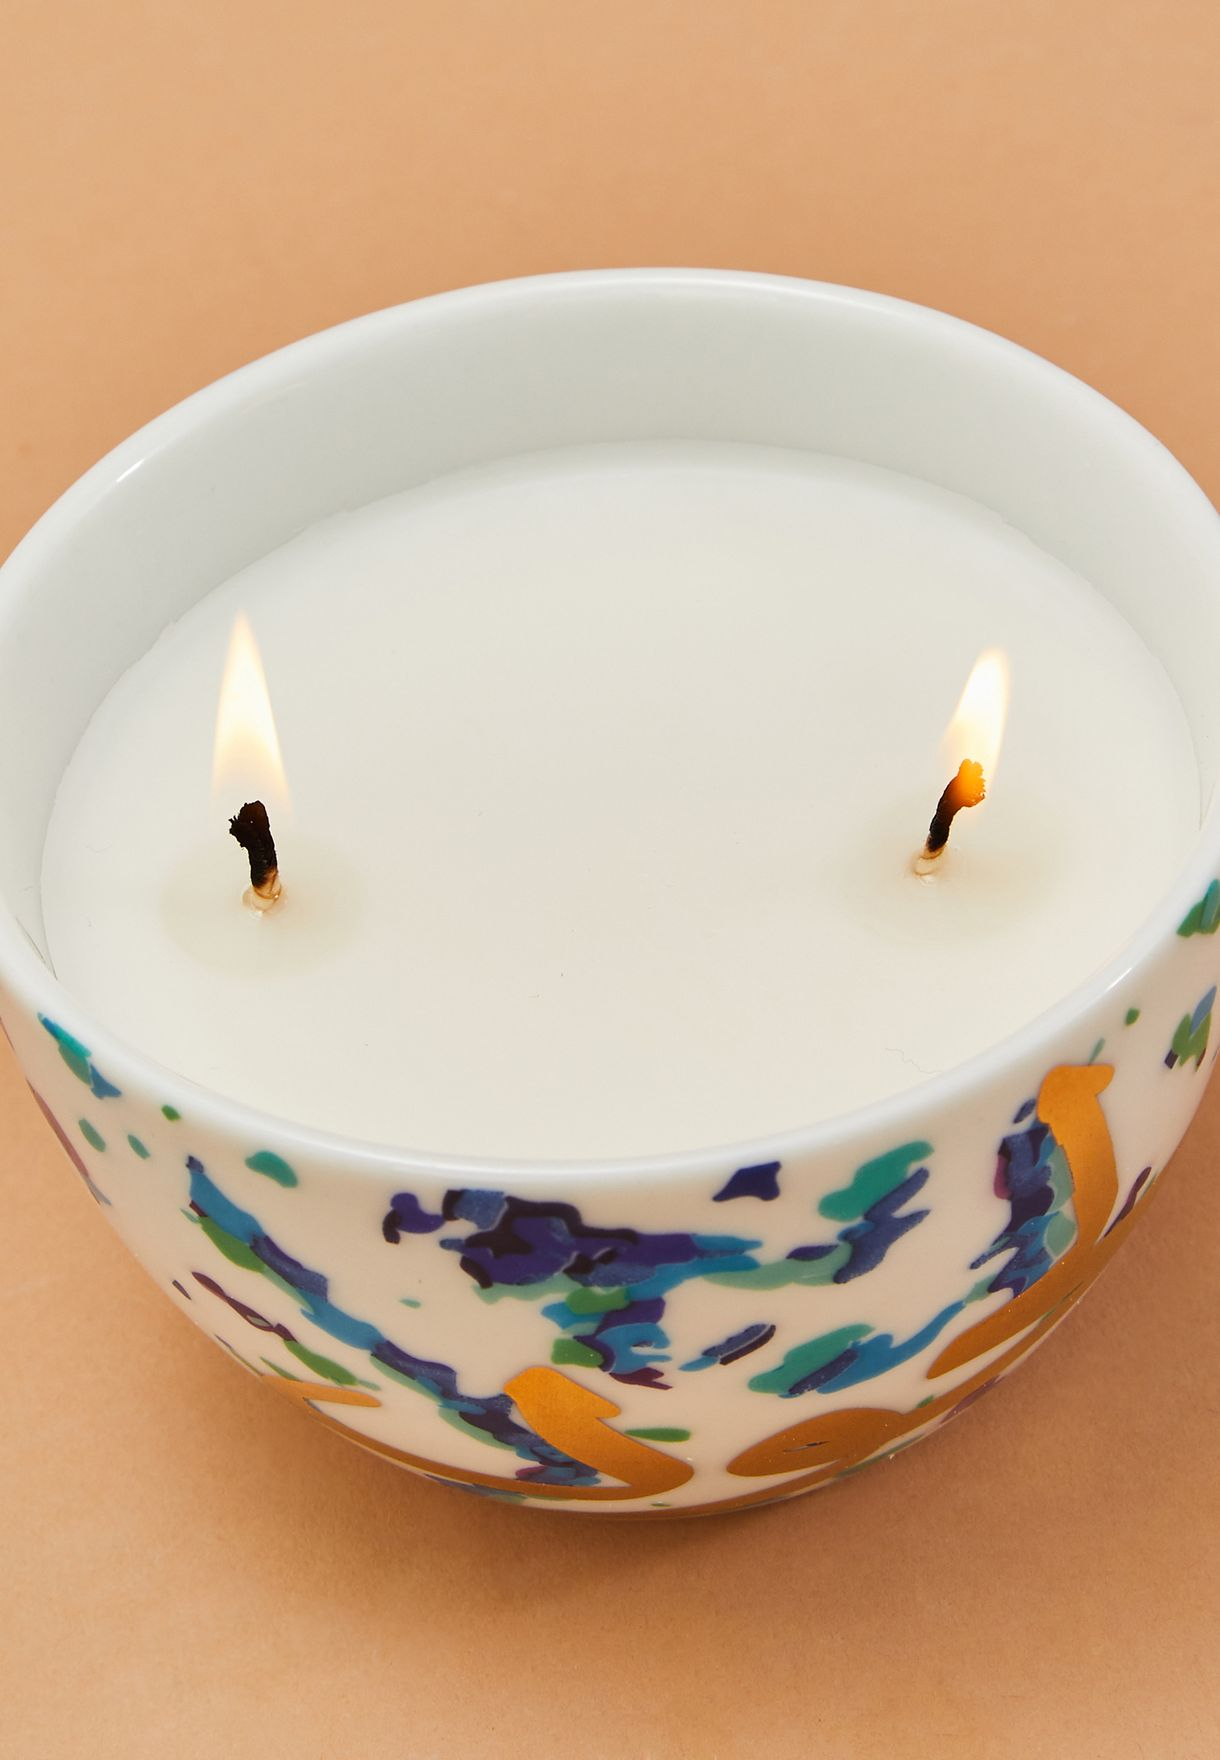 Lavender-Scented Fairuz Candle in a Gift Box